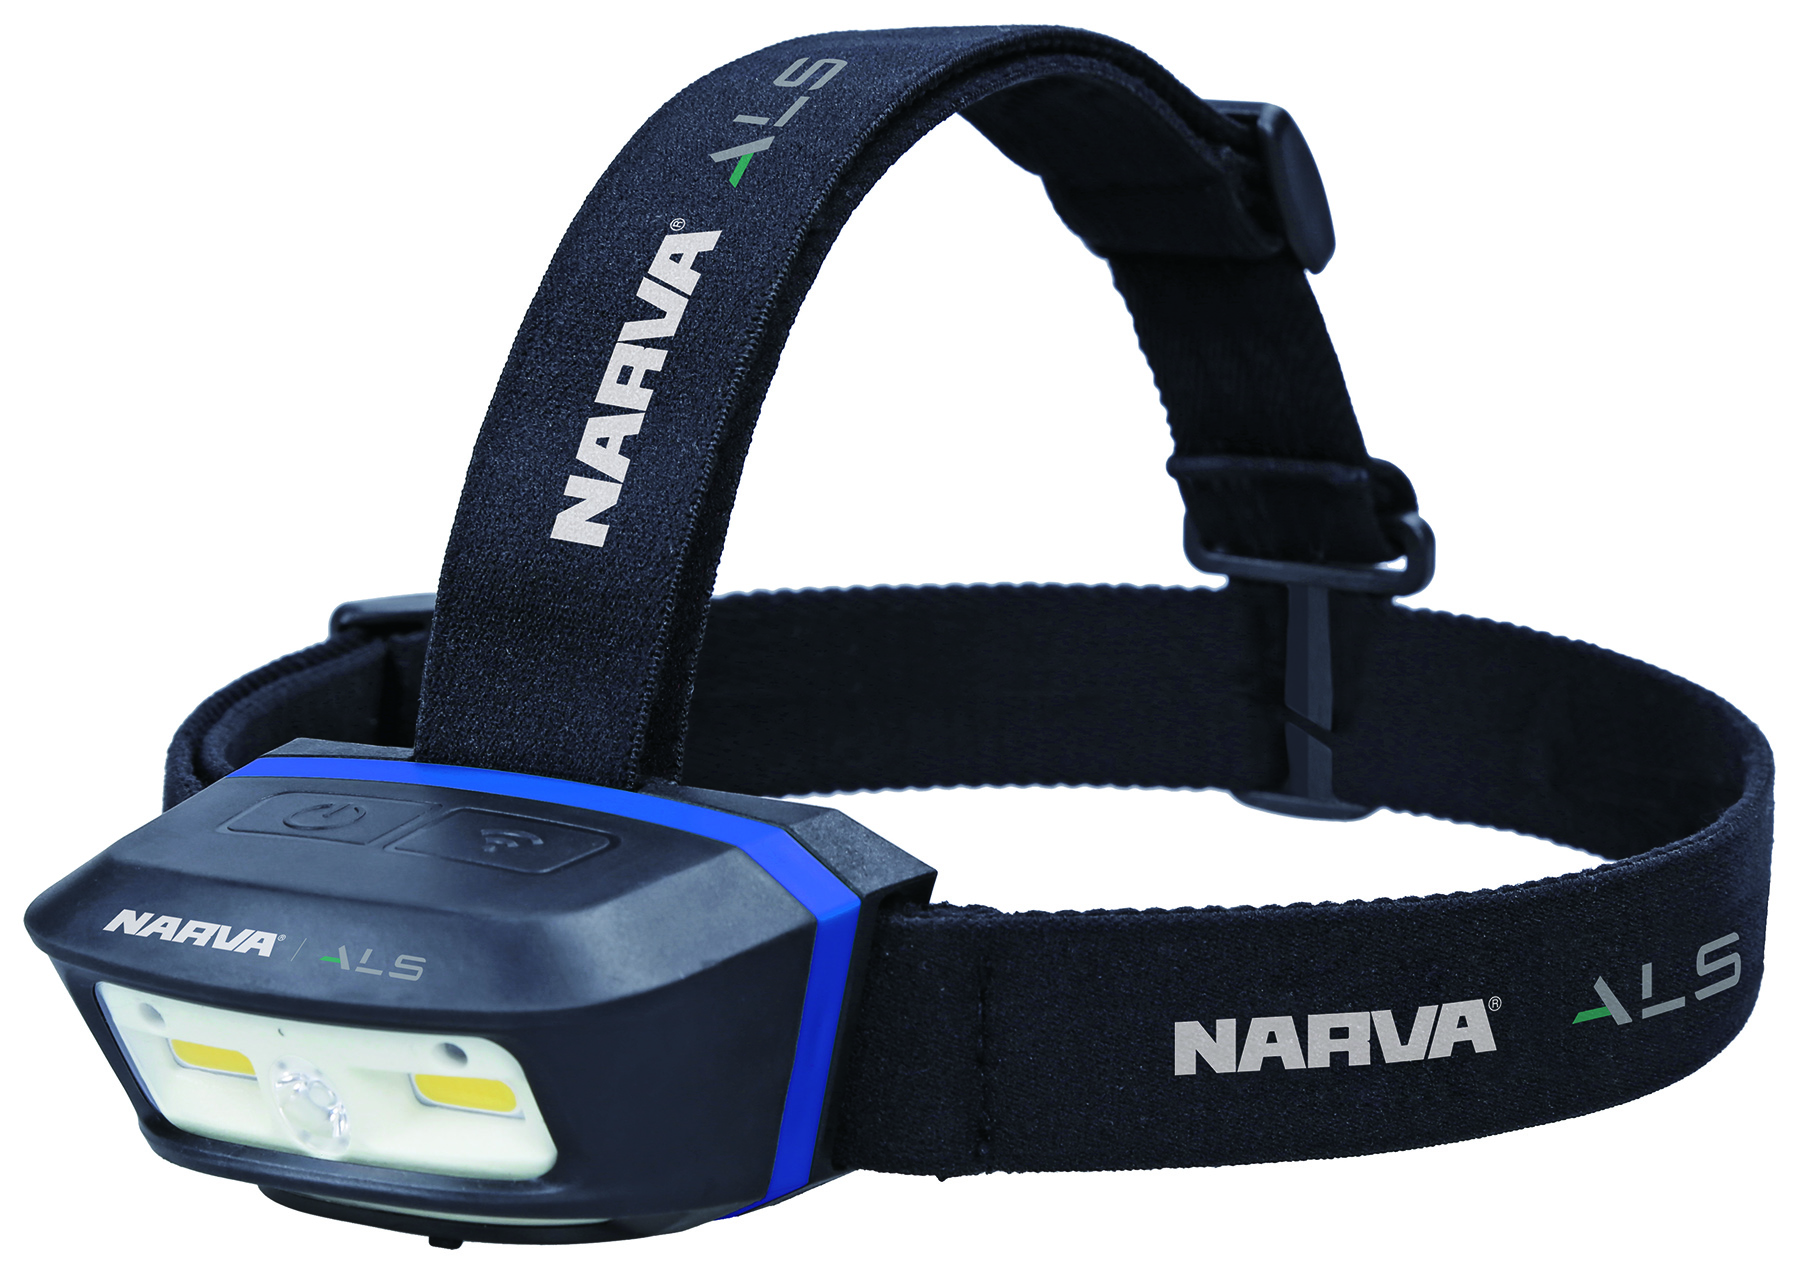 NARVA ALS Rechargeable LED Head Torch Range